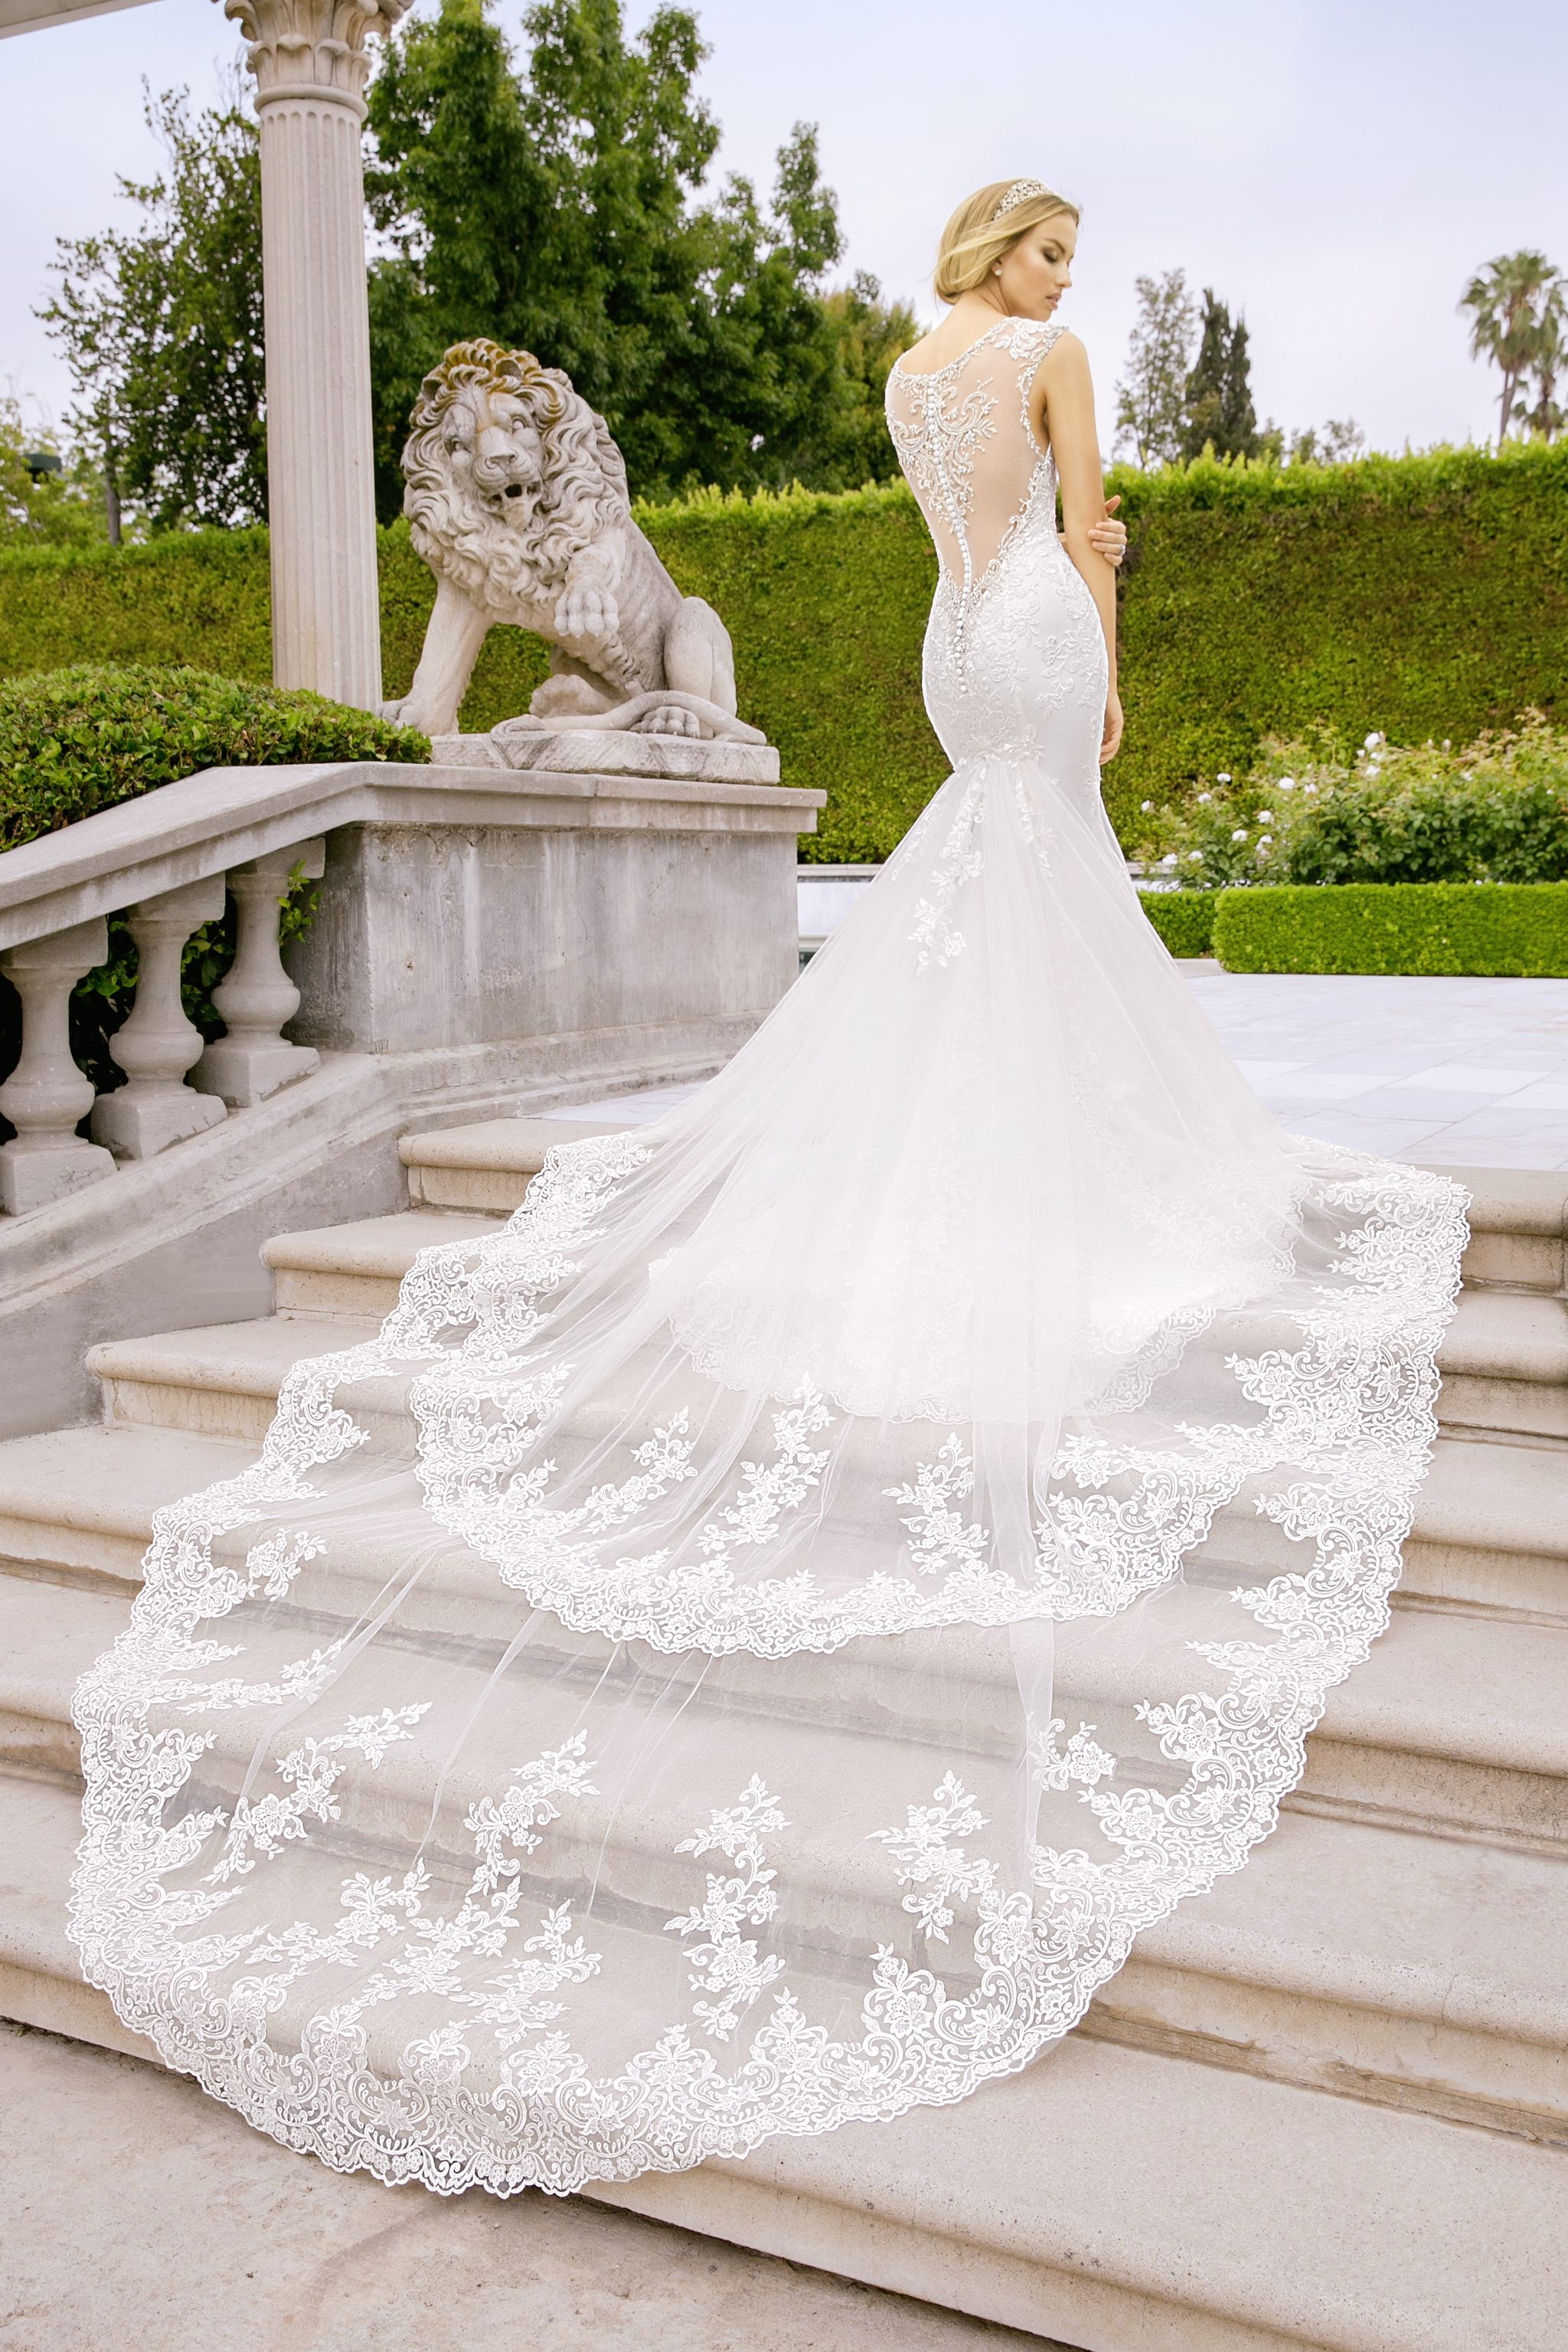 How To Choose A Wedding Gown That Is